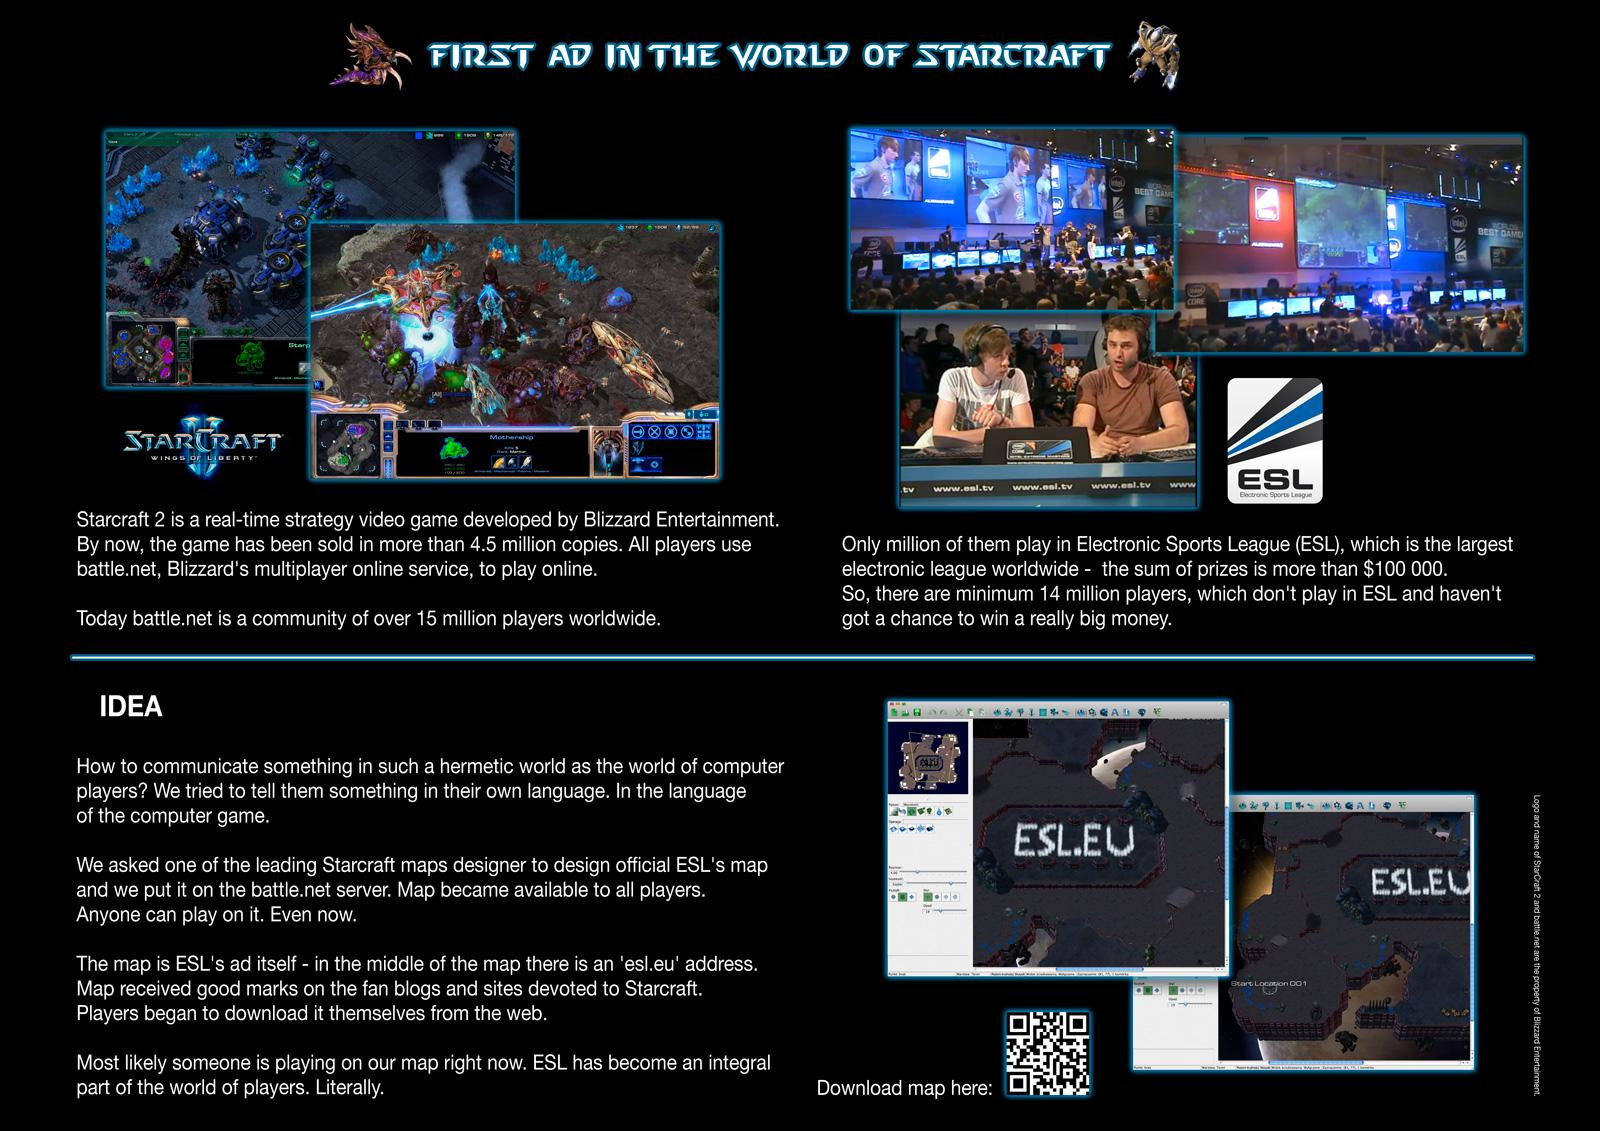 ESL Digital Ad -  First ad in the world of Starcraft